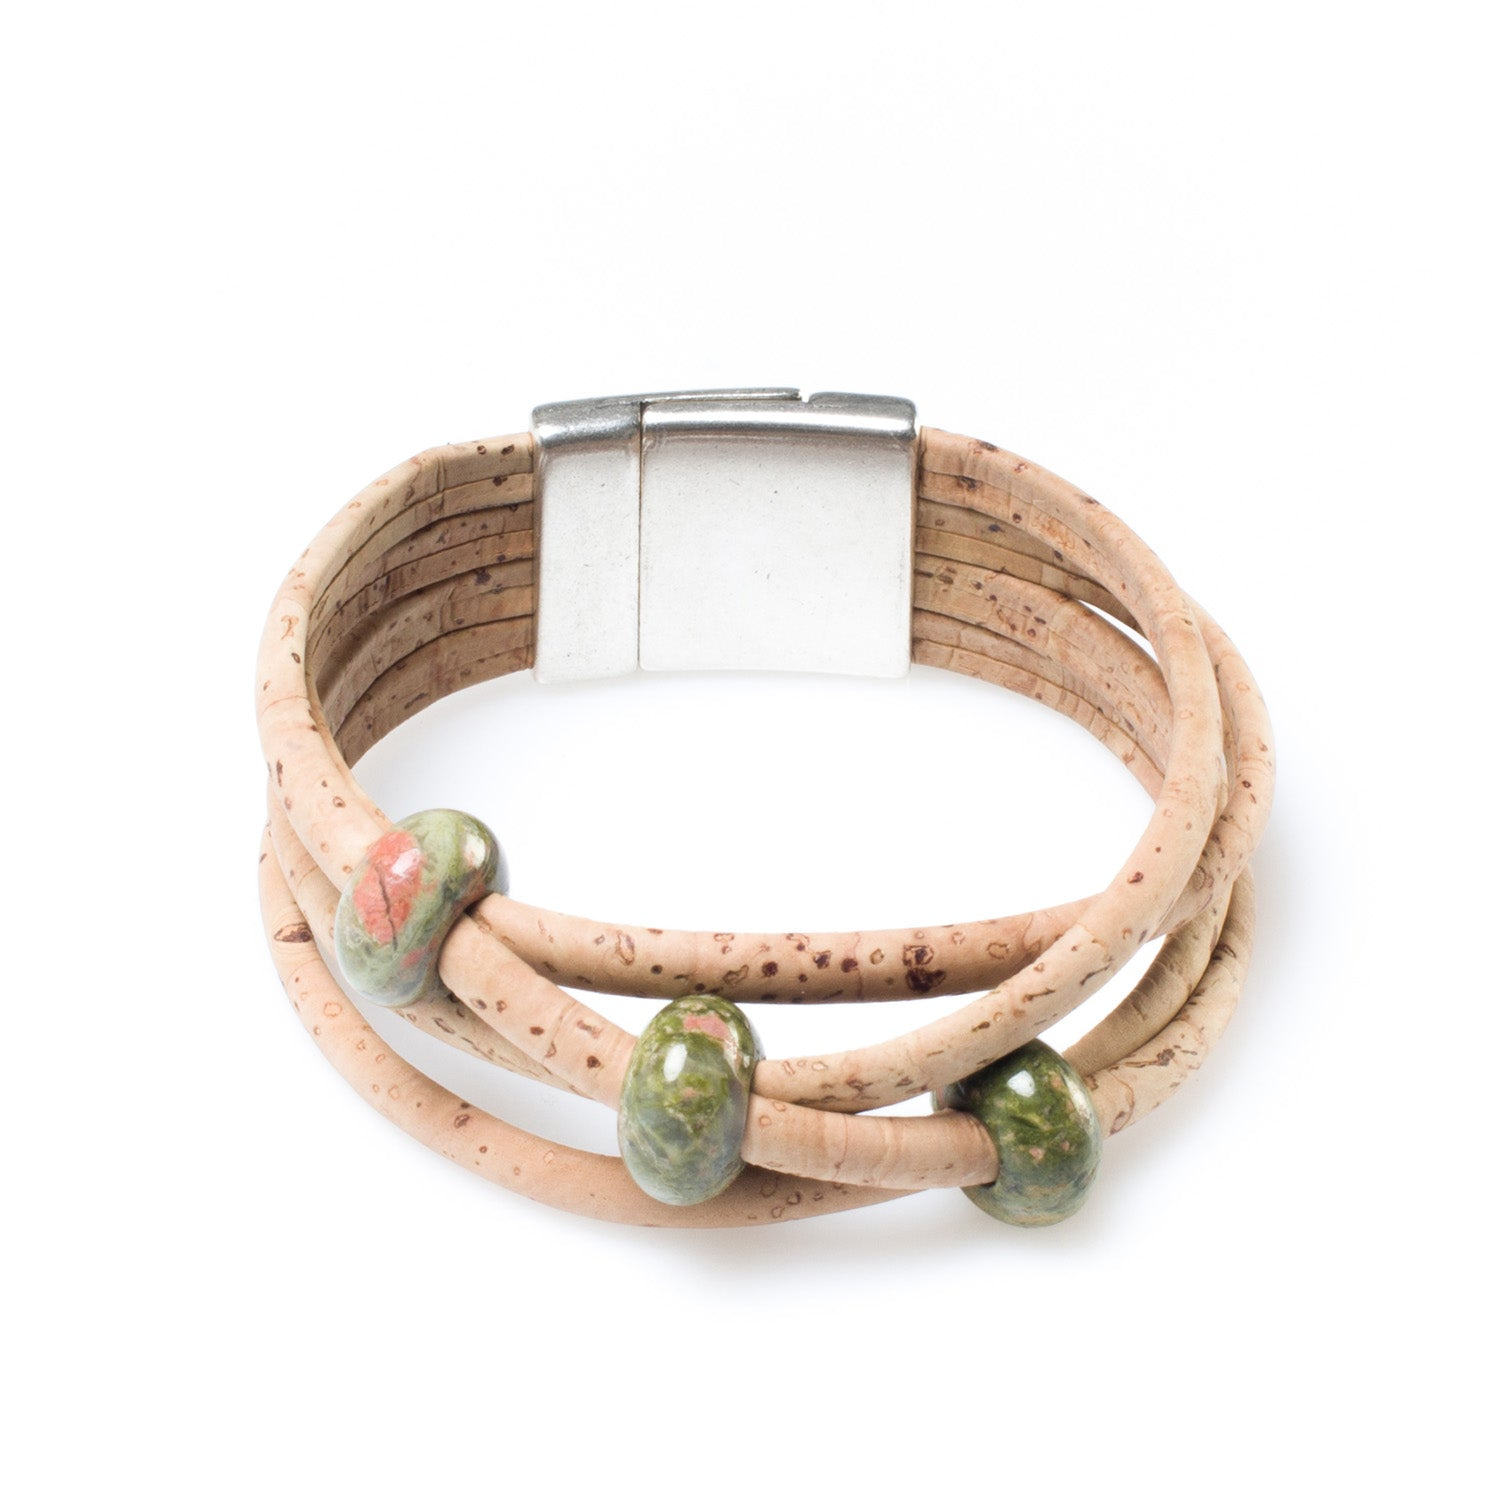 Green Beaded Cork Bracelet | HowCork - The Cork Marketplace